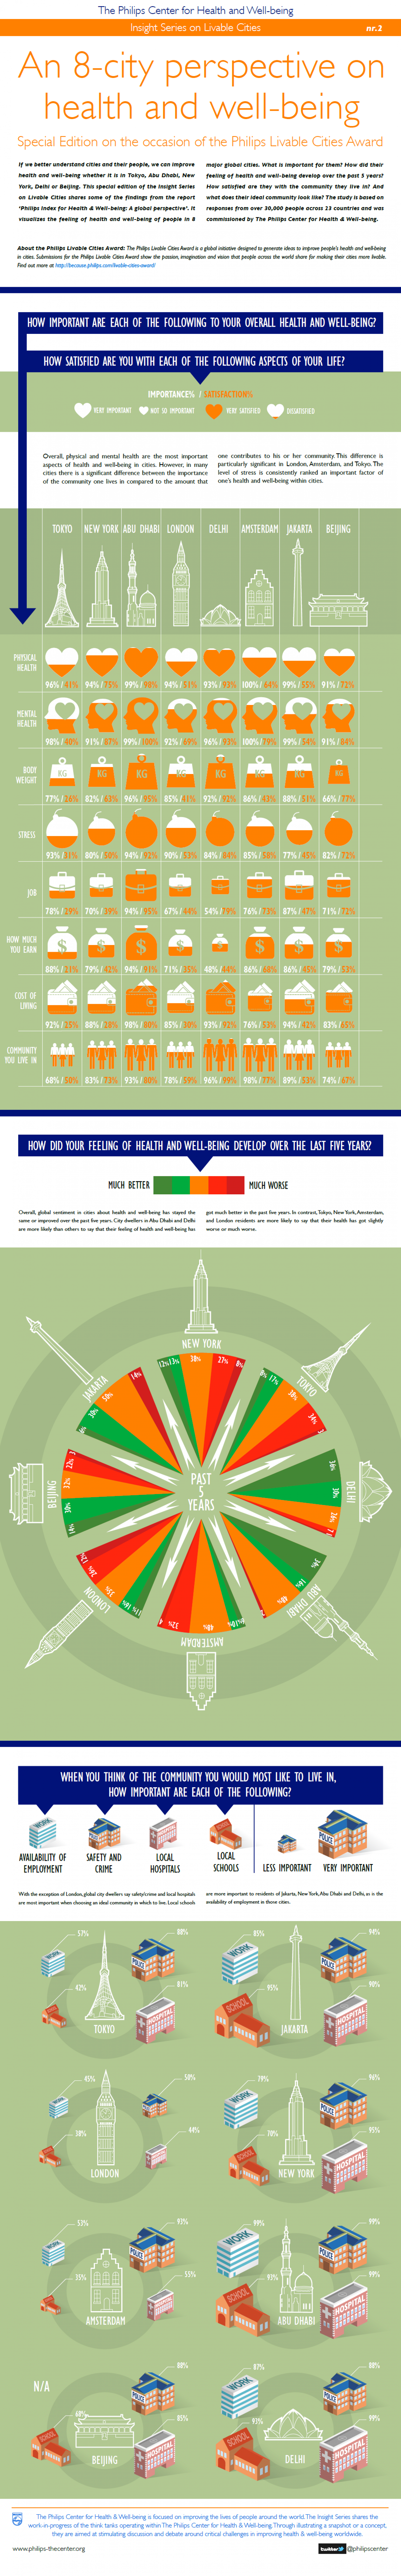 An 8-city Perspective on Health and Well-being Infographic